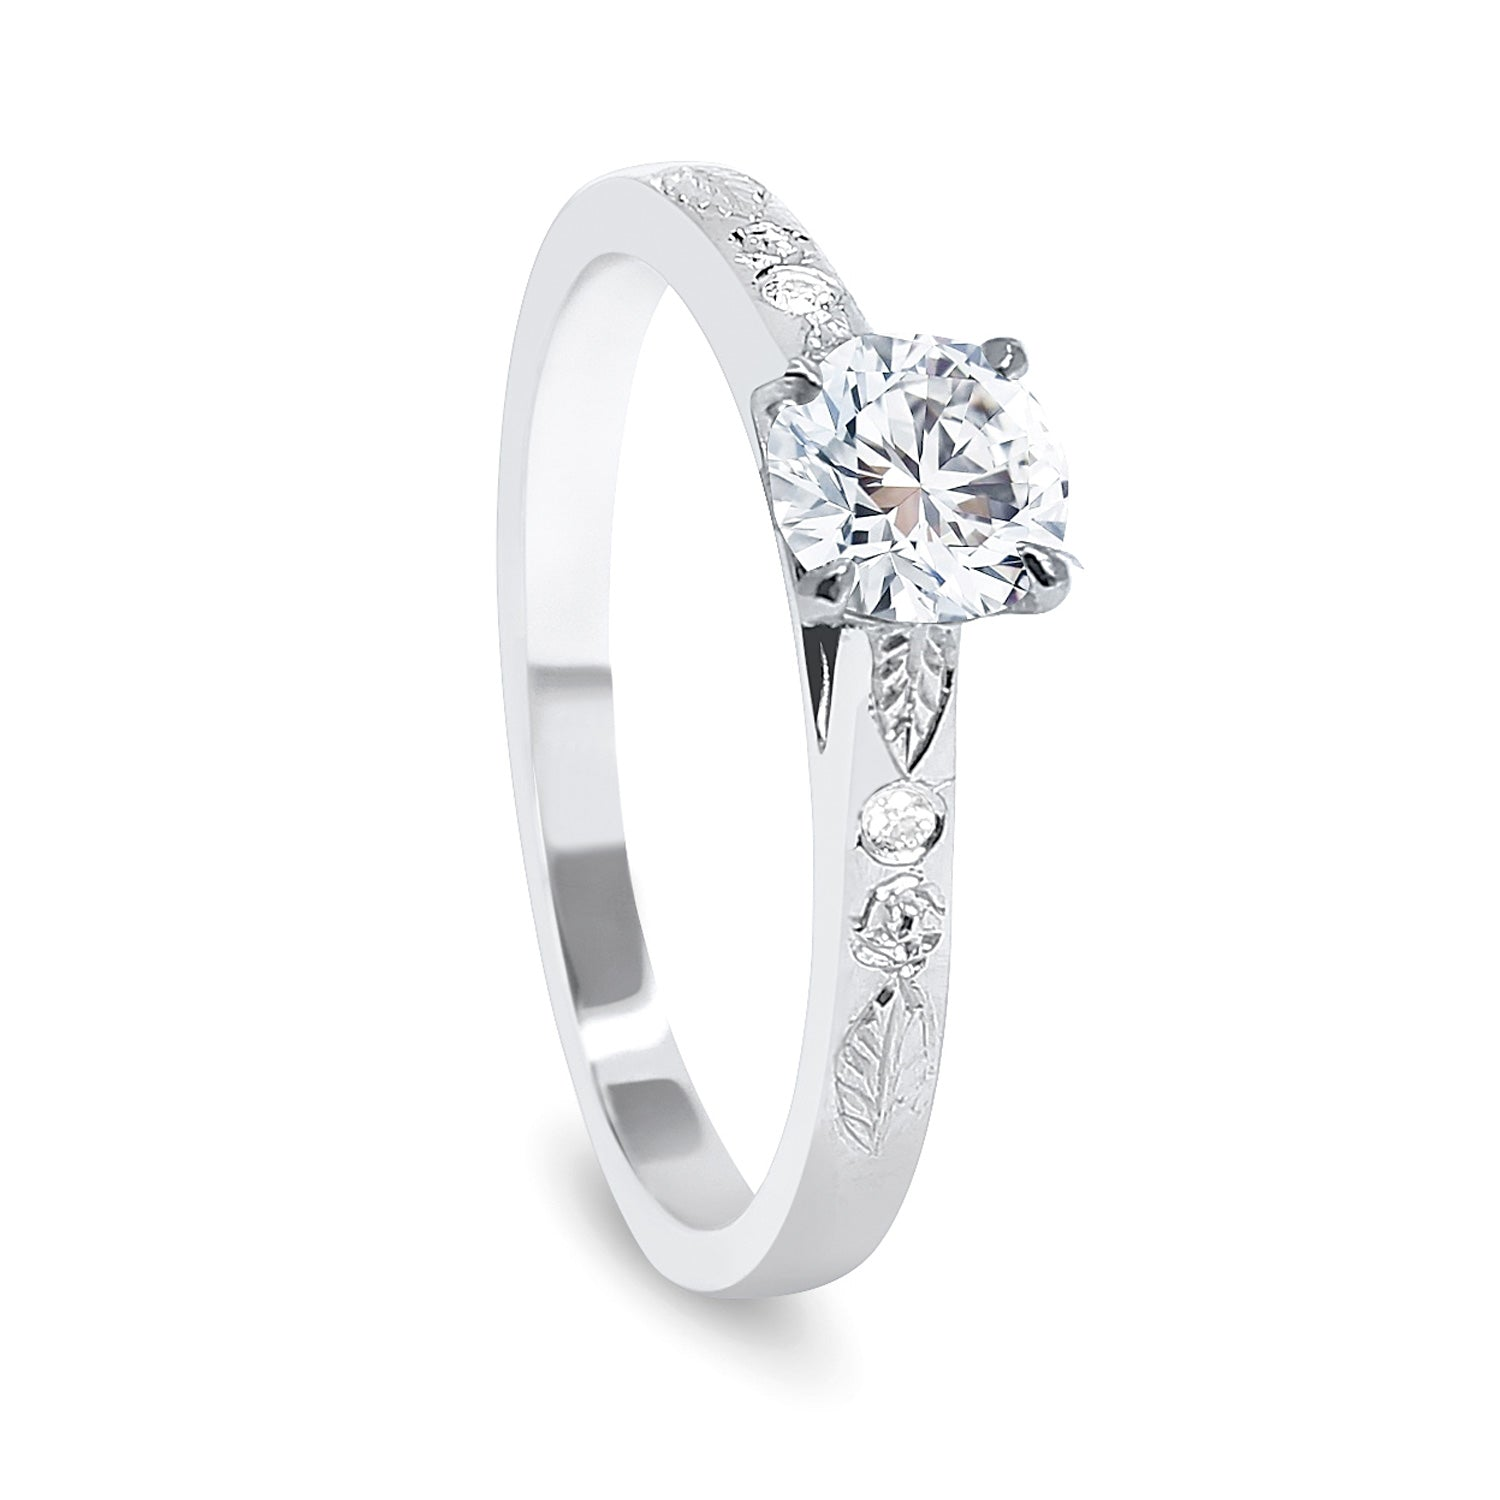 Bespoke Abs Diamond Engraved Platinum Engagement Ring